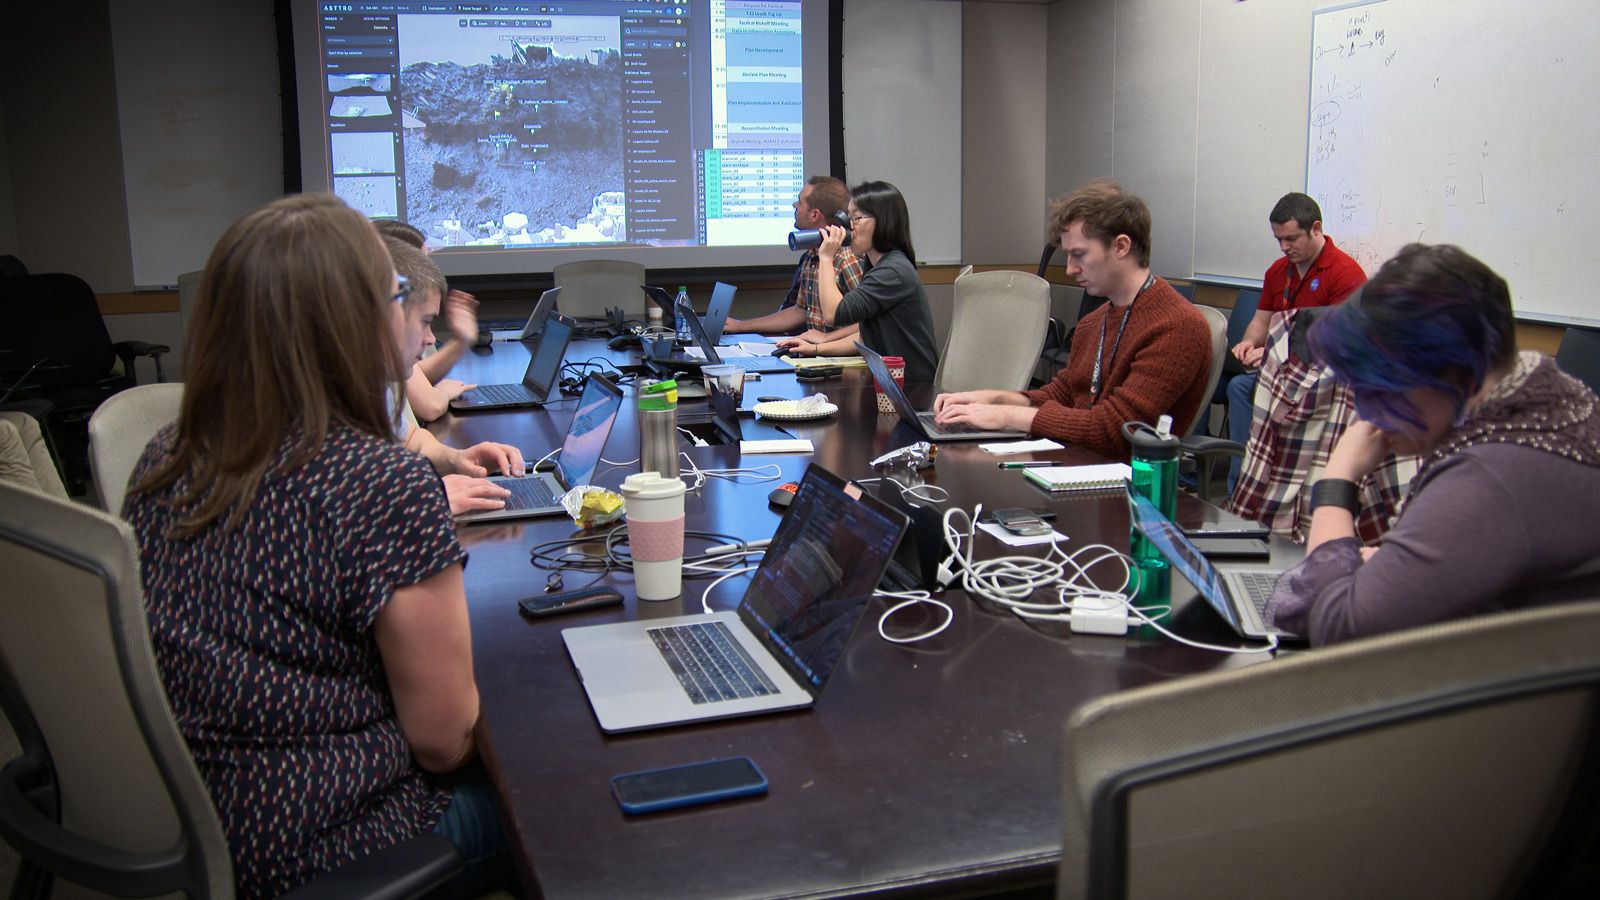 A group of scientists in a conference room